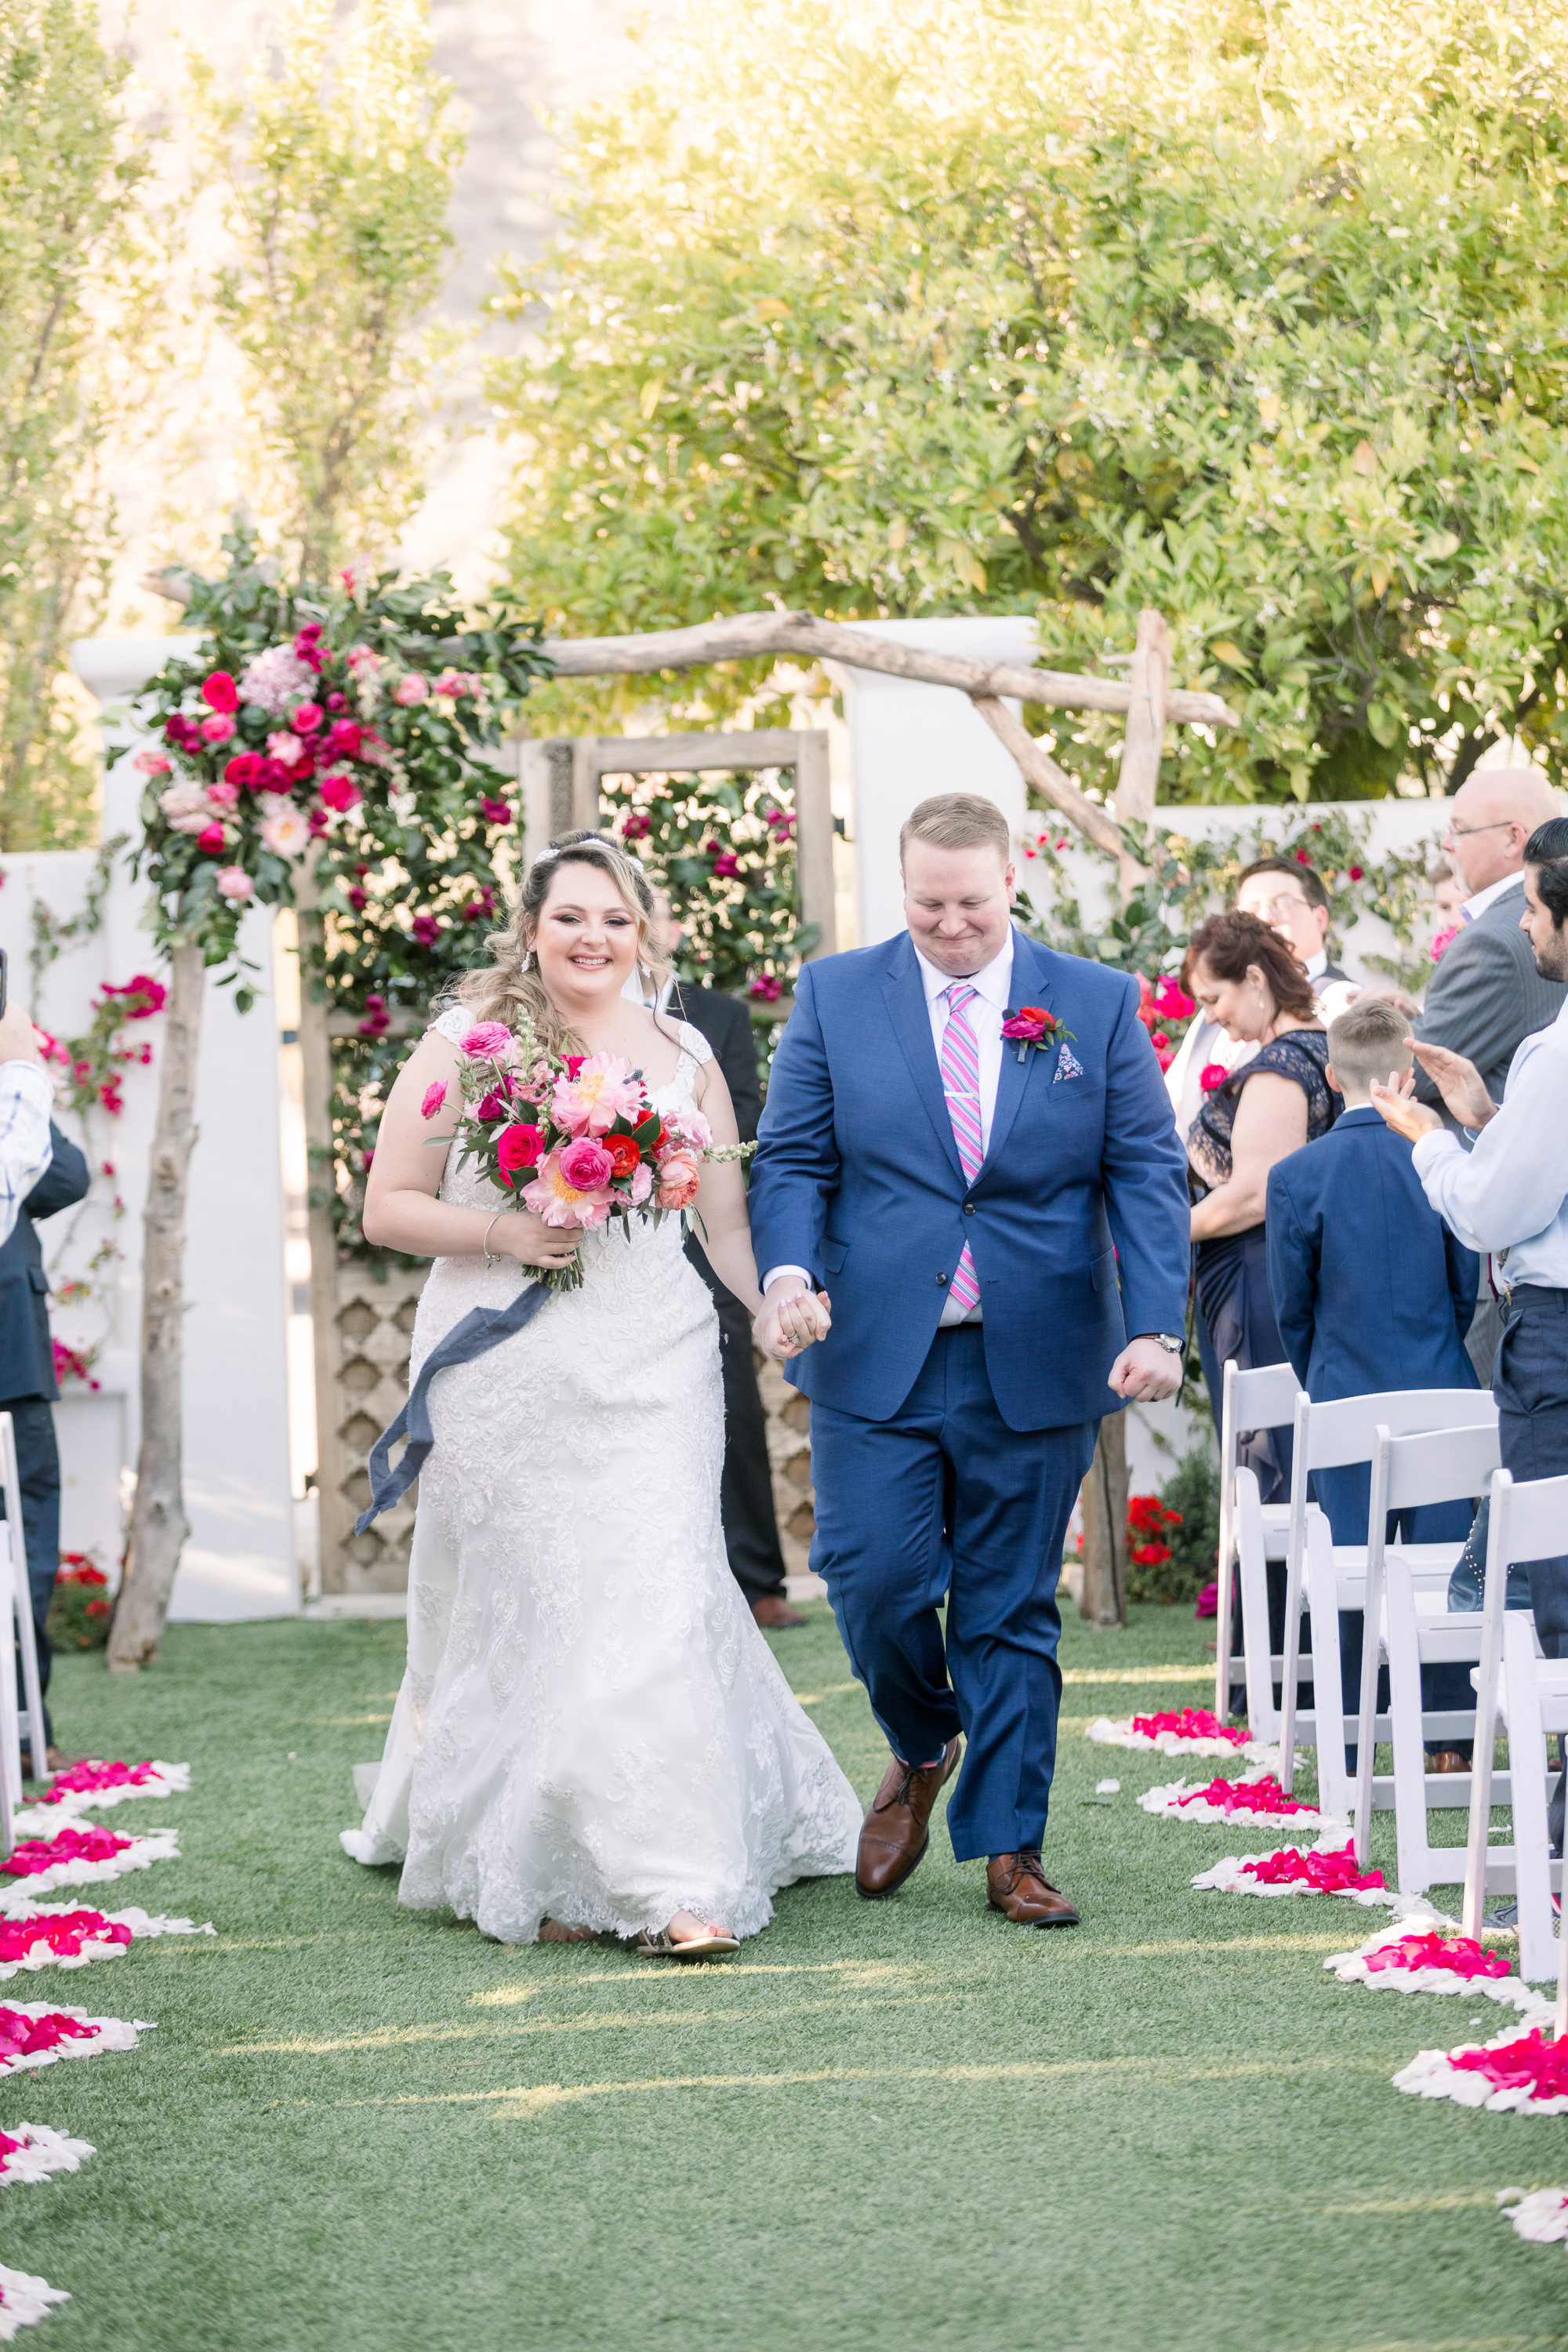 Roxanne and Brandon's El Chorro Wedding - Arizona florist Phoenix scottsdale Mesa chandler Sedona Prescott - Ceremony Exit